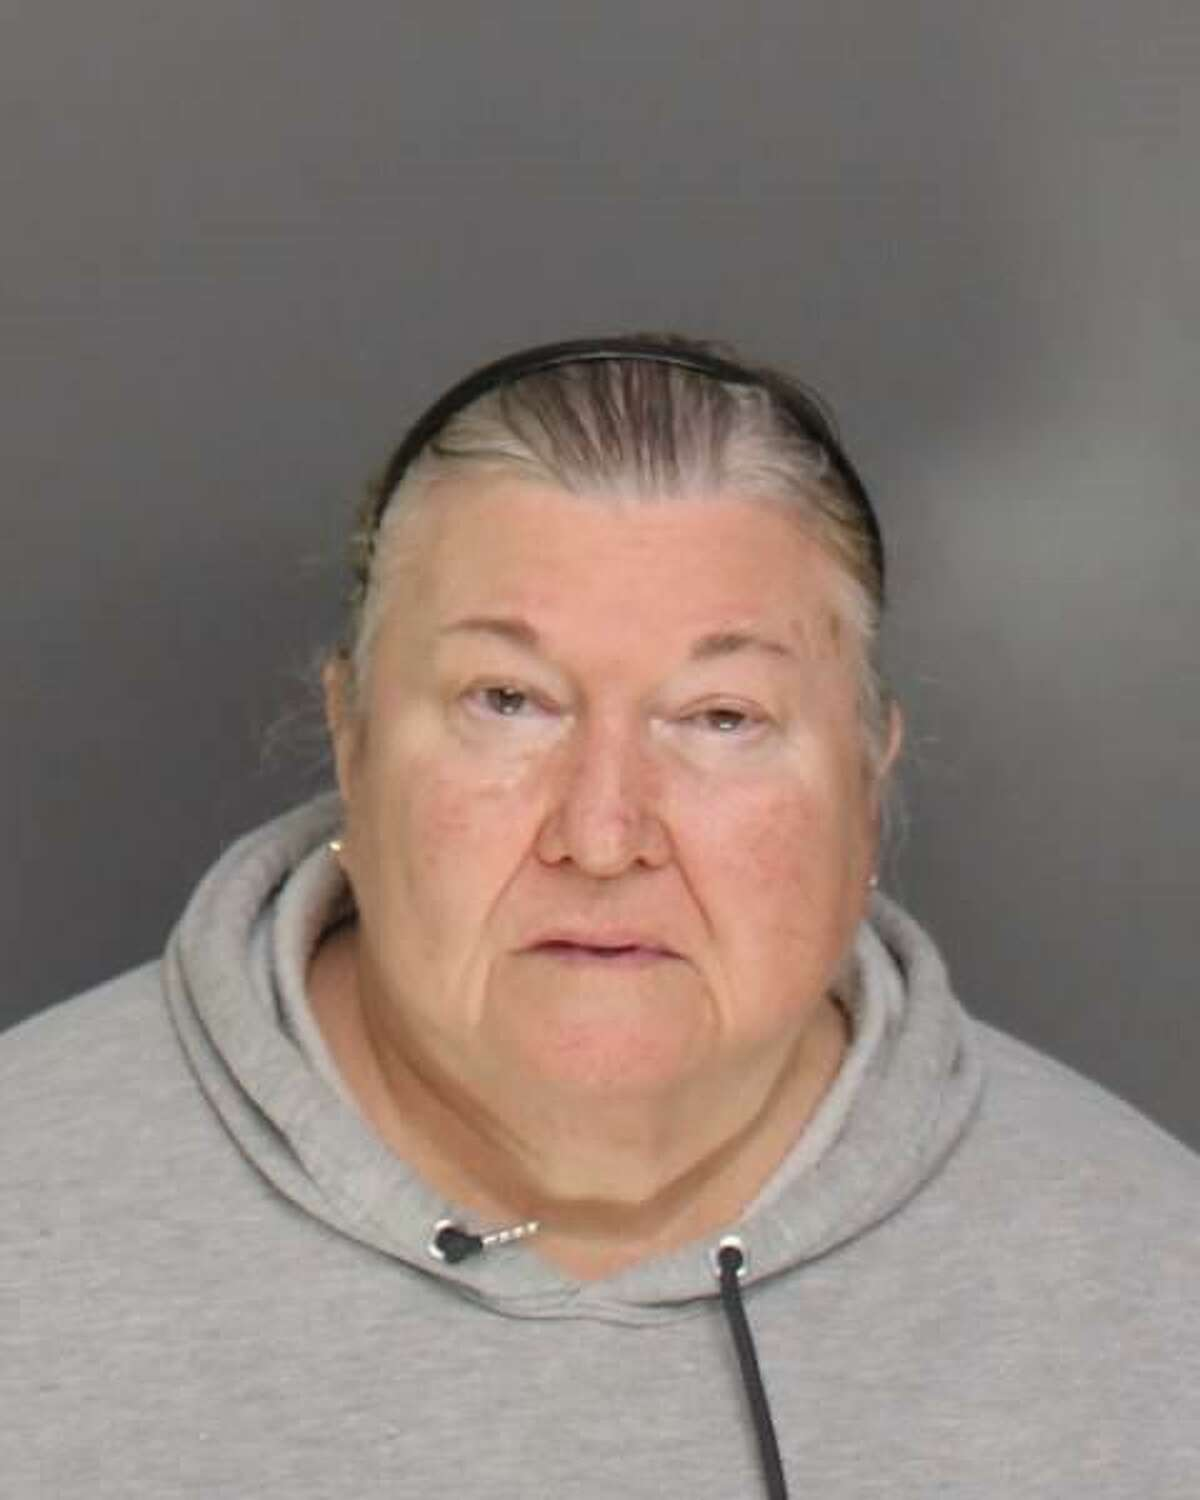 Dale LaPrade, 66, has been charged with embezzling more than $60,000 of the historic Park Cemetery's money.